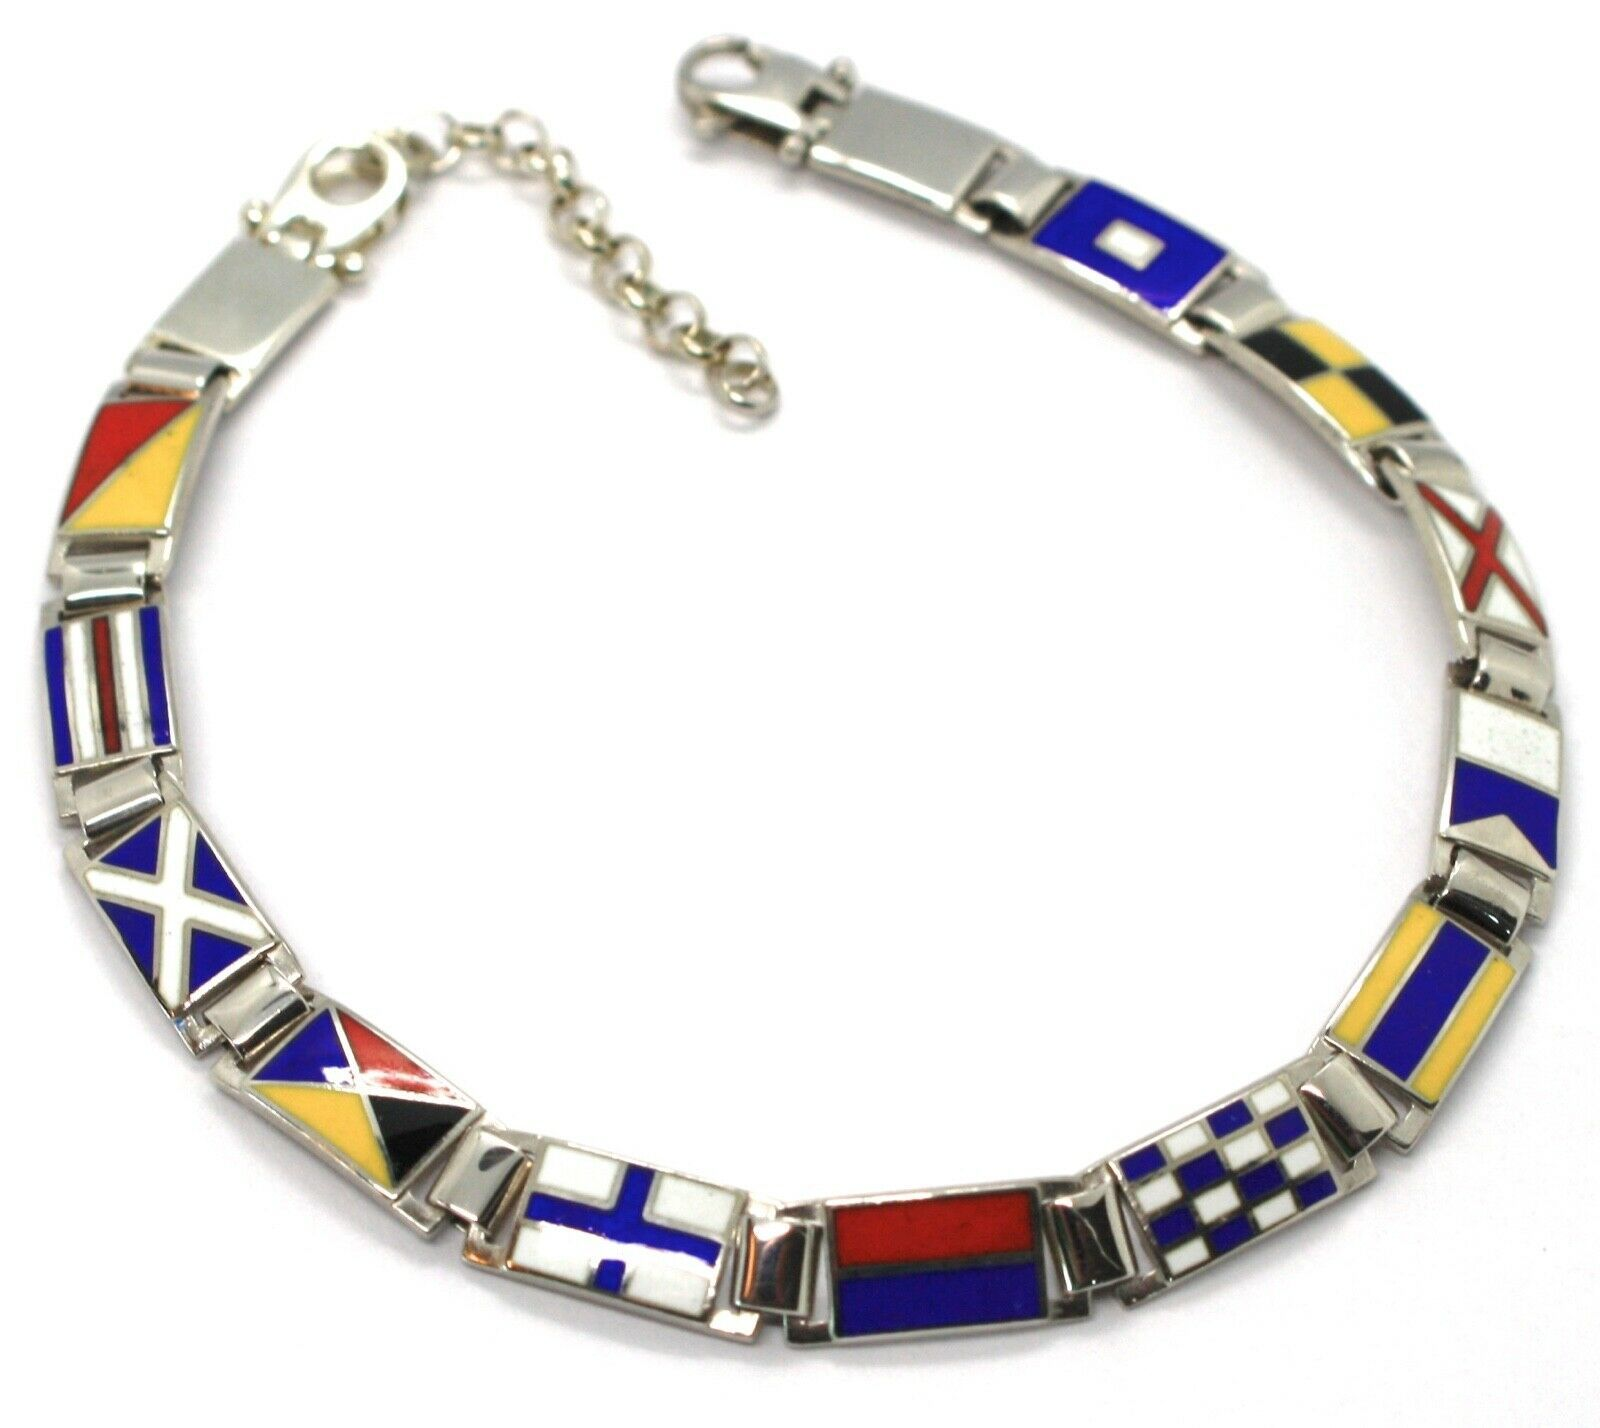 "925 SILVER WHITE BRACELET GLAZED NAUTICAL FLAGS, 0.24"" WIDTH, 7.9-9.1"" LENGTH"